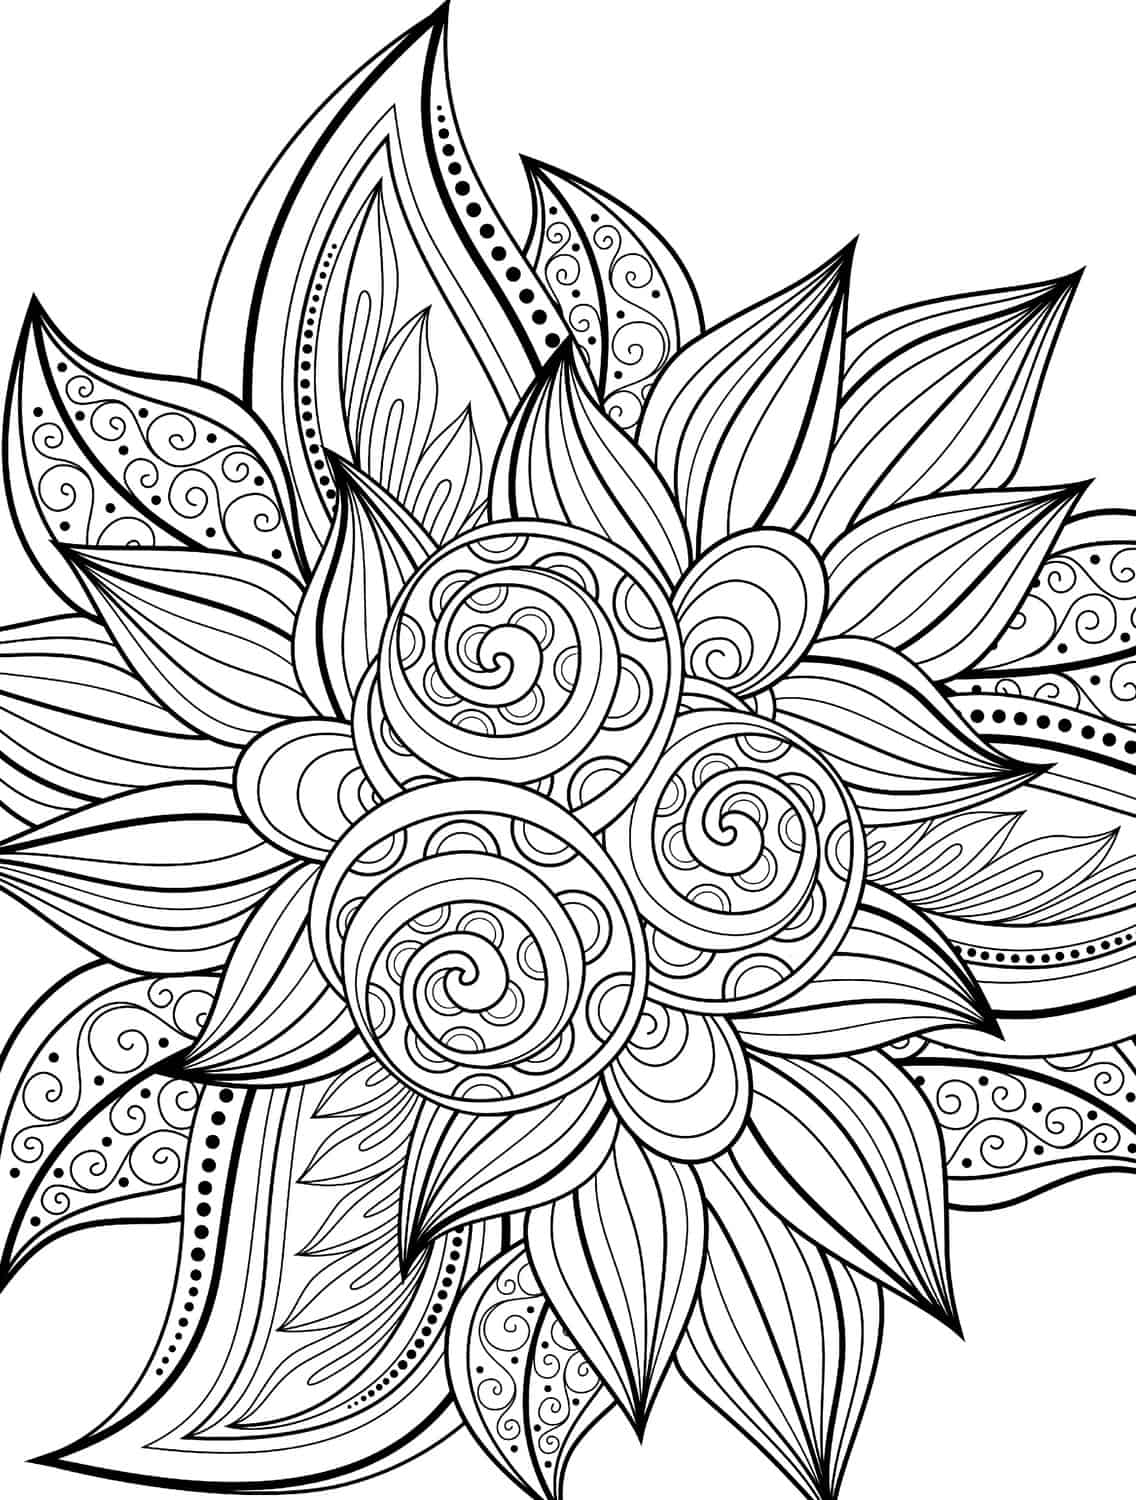 10 Free Printable Holiday Adult Coloring Pages Printable Coloring Pages Adults